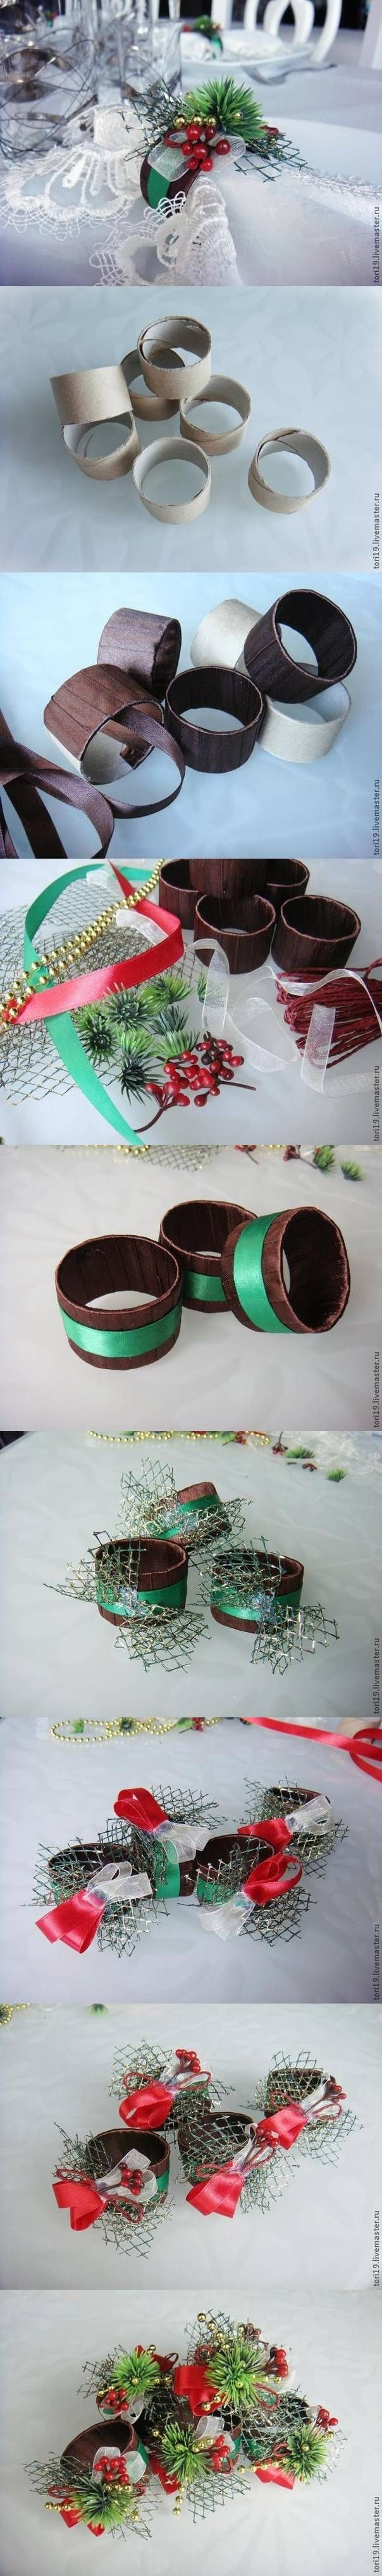 How to make toilet paper napkin rings diy christmas diy crafts do it how to make toilet paper napkin rings diy christmas diy crafts do it yourself diy projects napkin rings solutioingenieria Choice Image